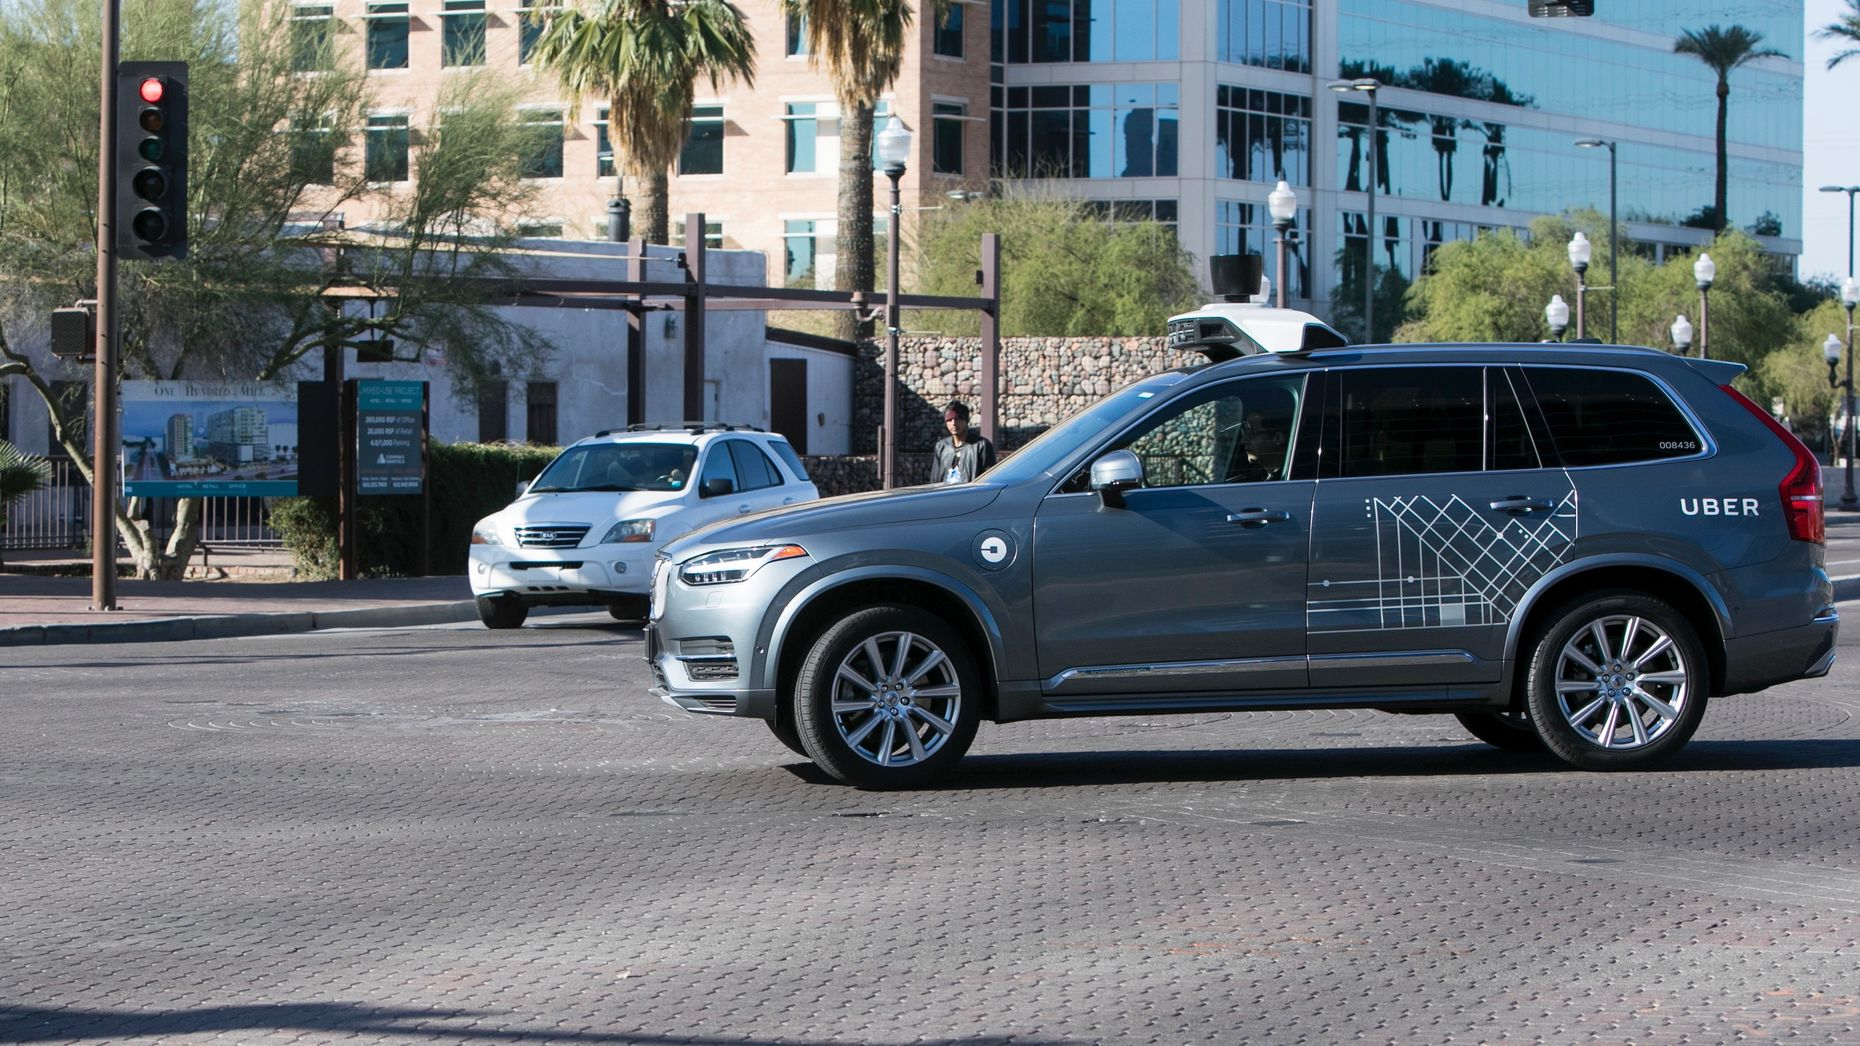 An Uber self-driving car being tested in Arizona in February. Photo by AP